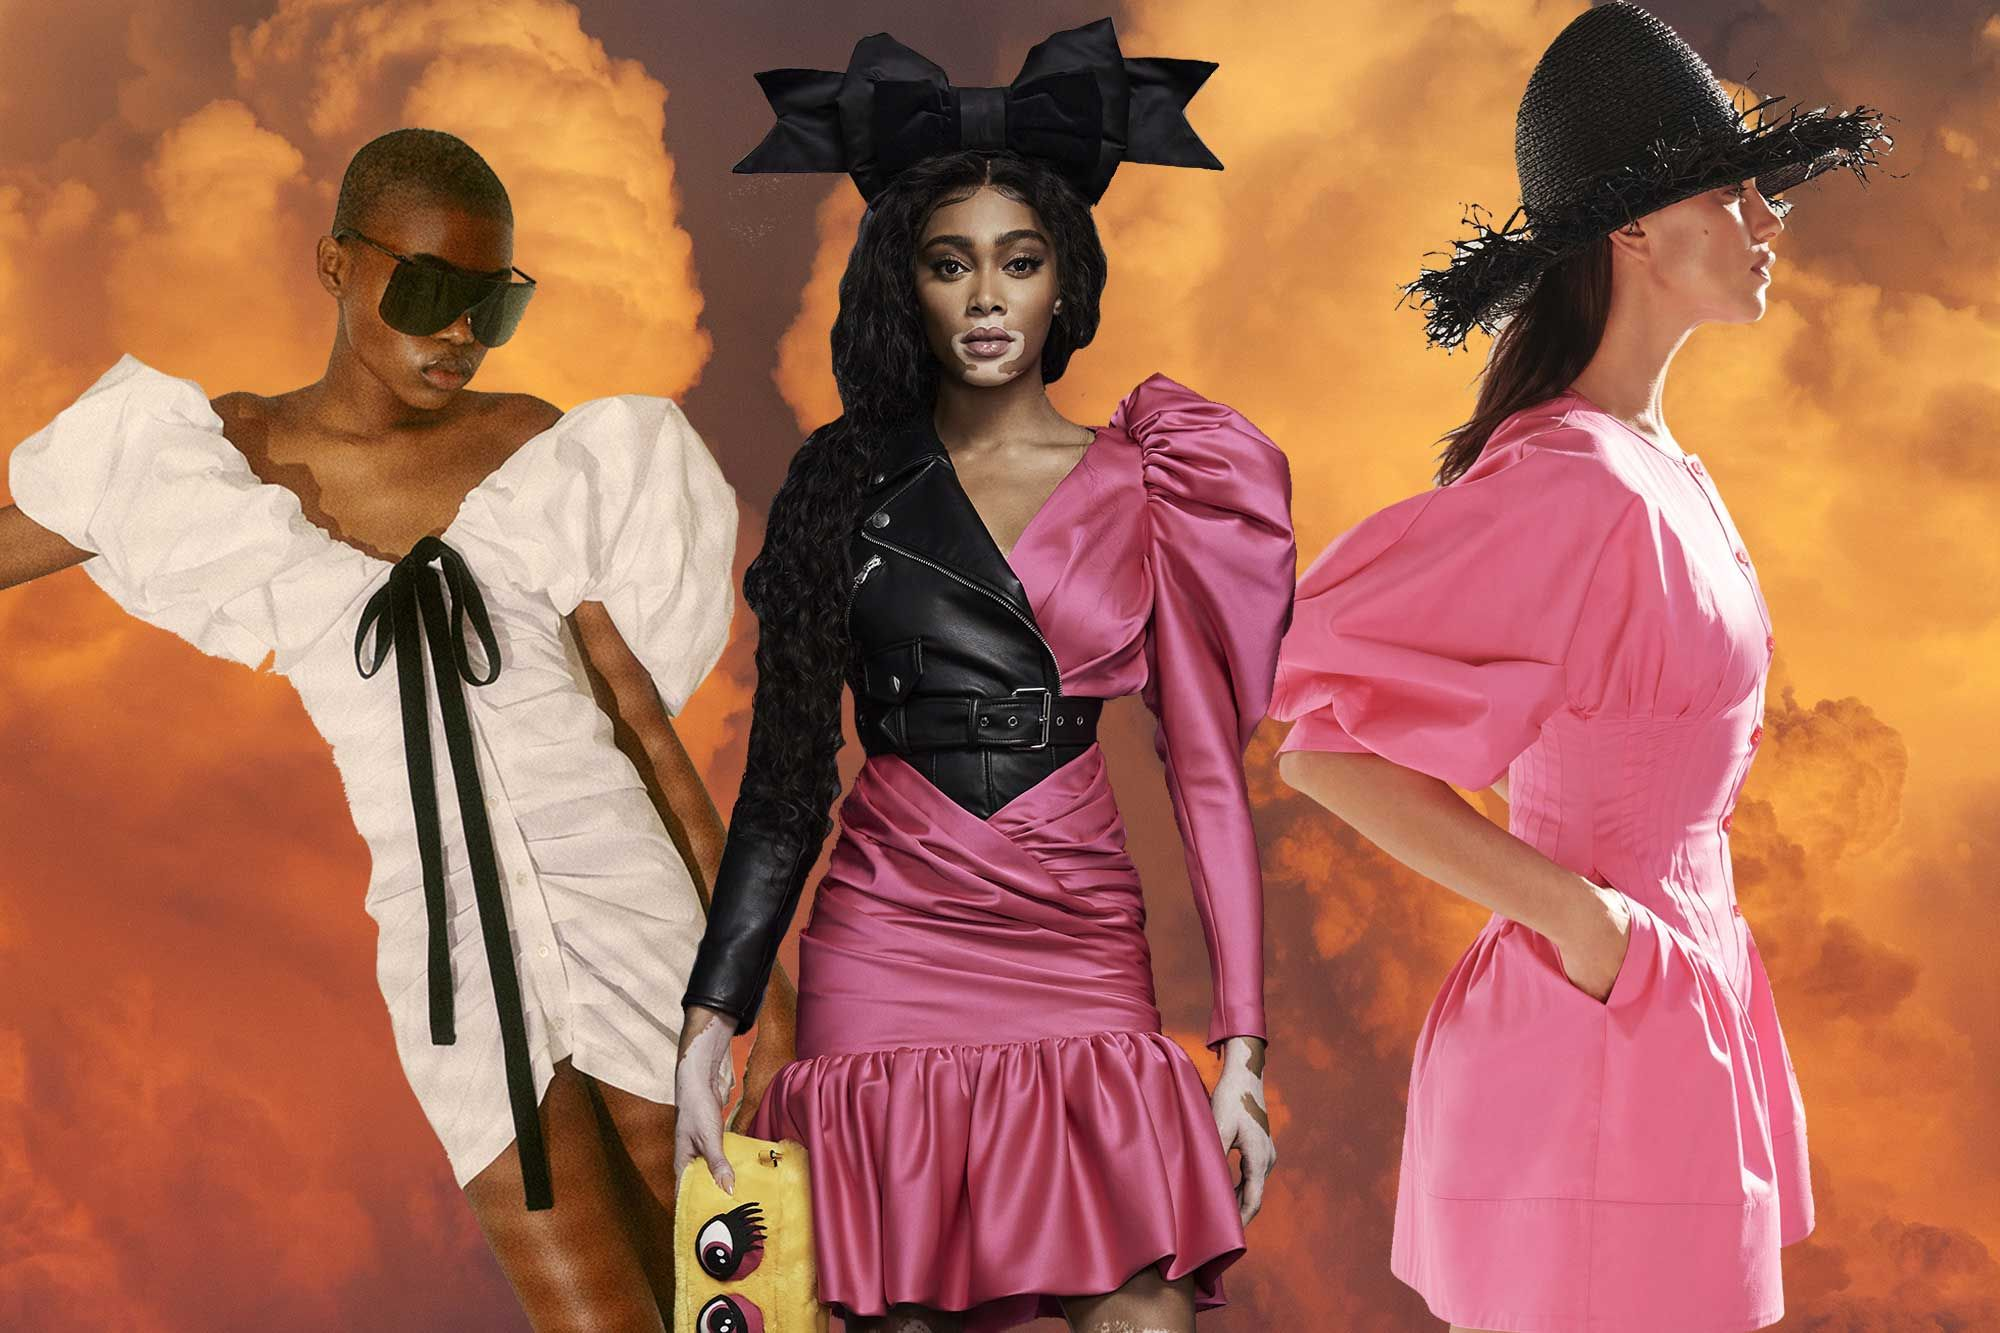 Tatler's Haute List: Why You Need This Quirky Pre-Fall 2021 Trend In Your Wardrobe